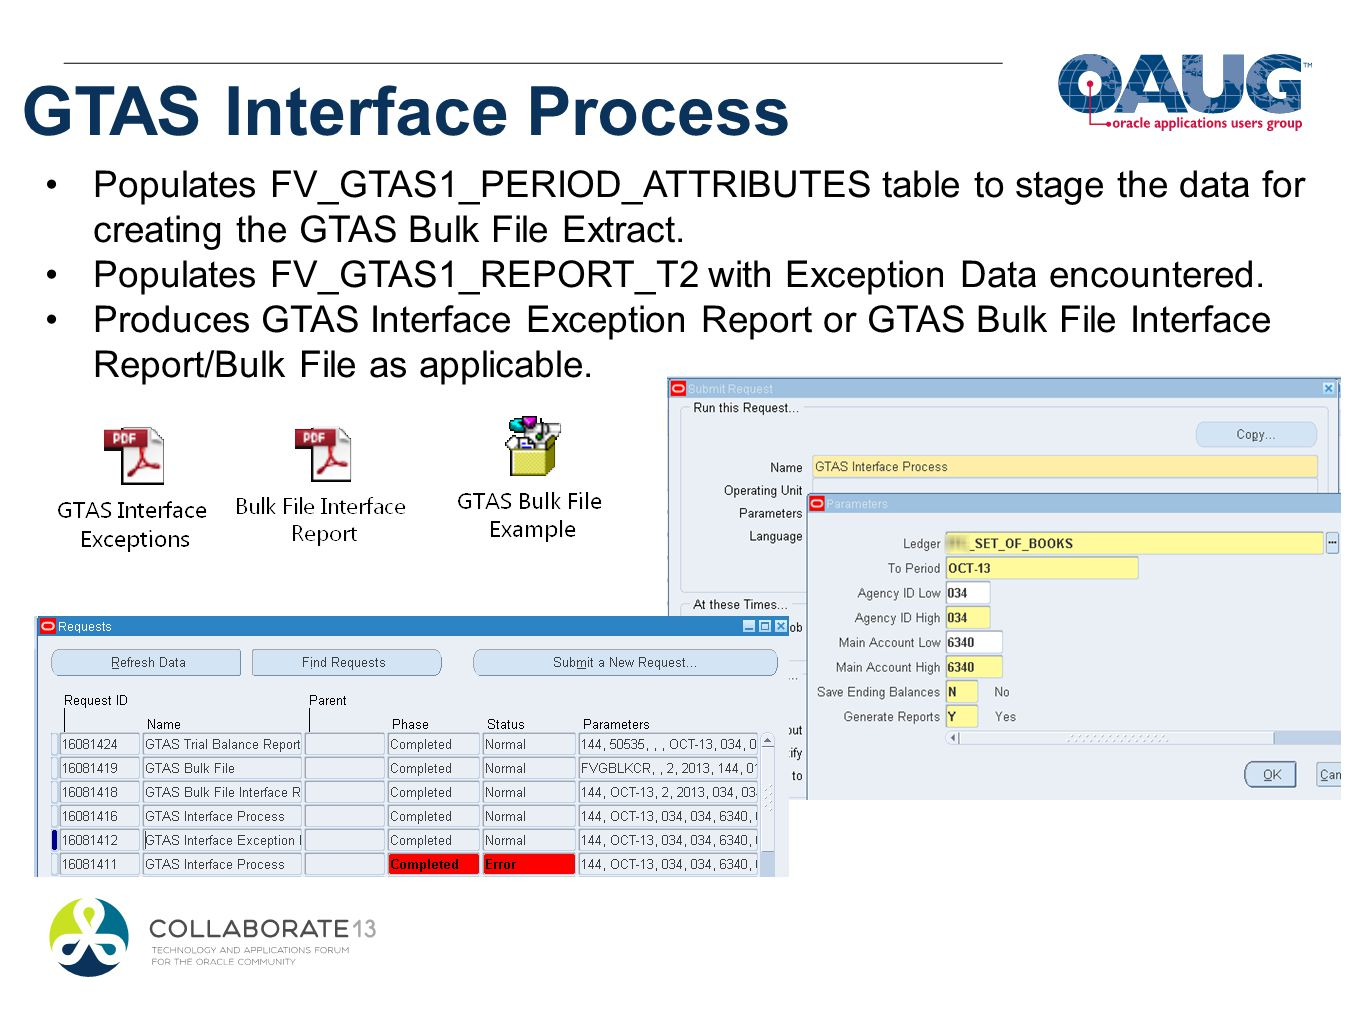 GTAS Interface Process Populates FV_GTAS1_PERIOD_ATTRIBUTES table to stage the data for creating the GTAS Bulk File Extract. Populates FV_GTAS1_REPORT